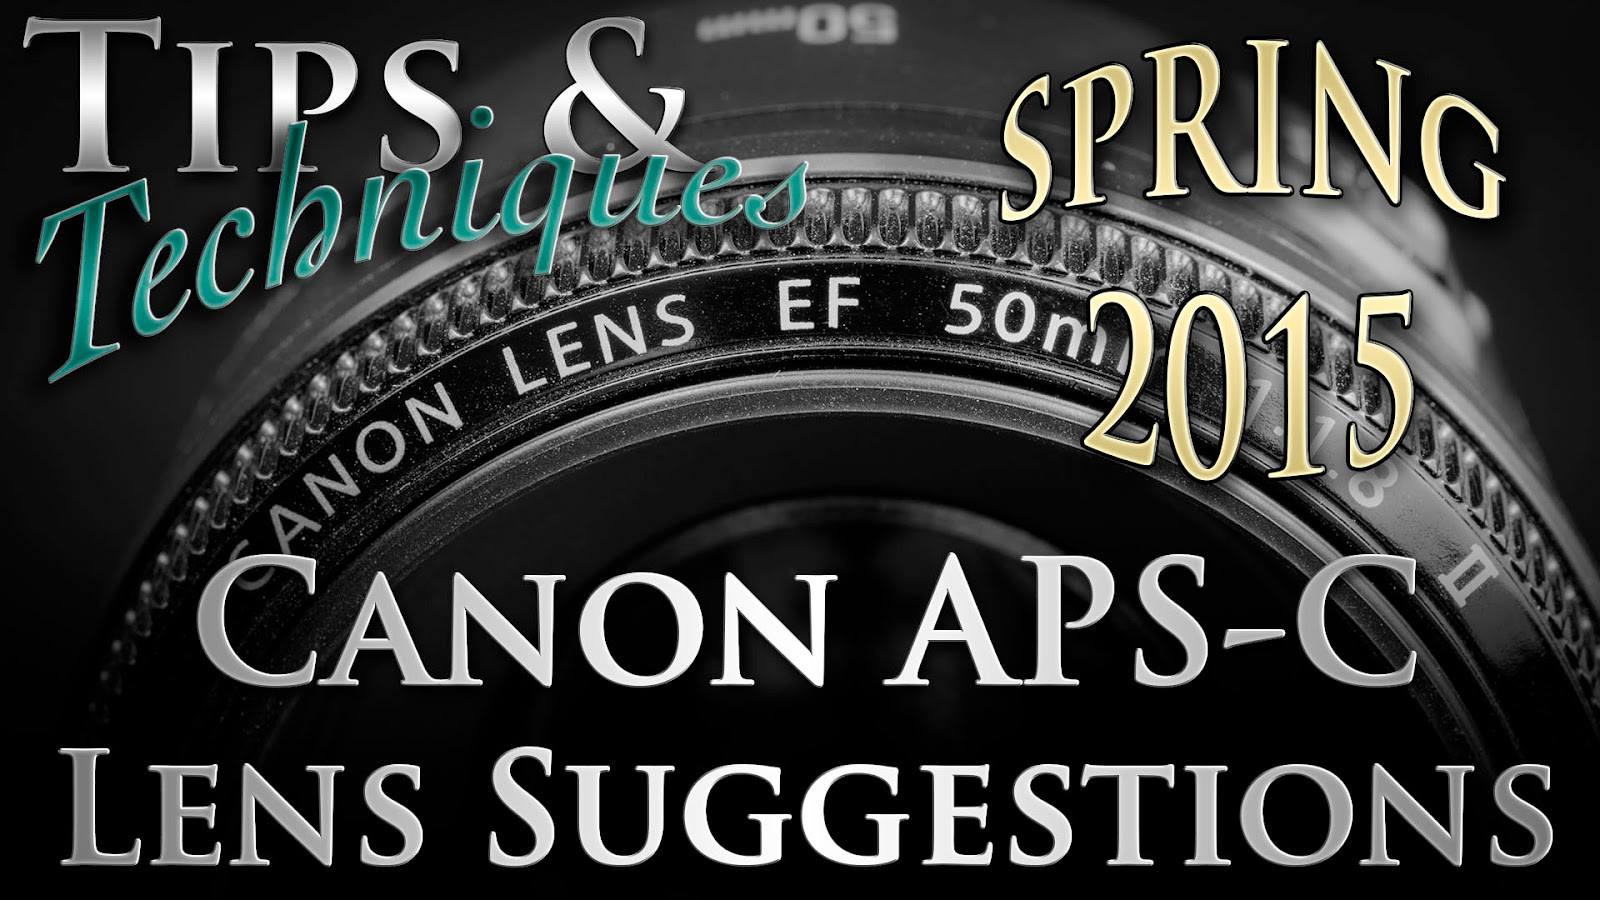 Lens Suggestions For Canon APS-C Photographers, Spring 2015 | Tips & Techniques